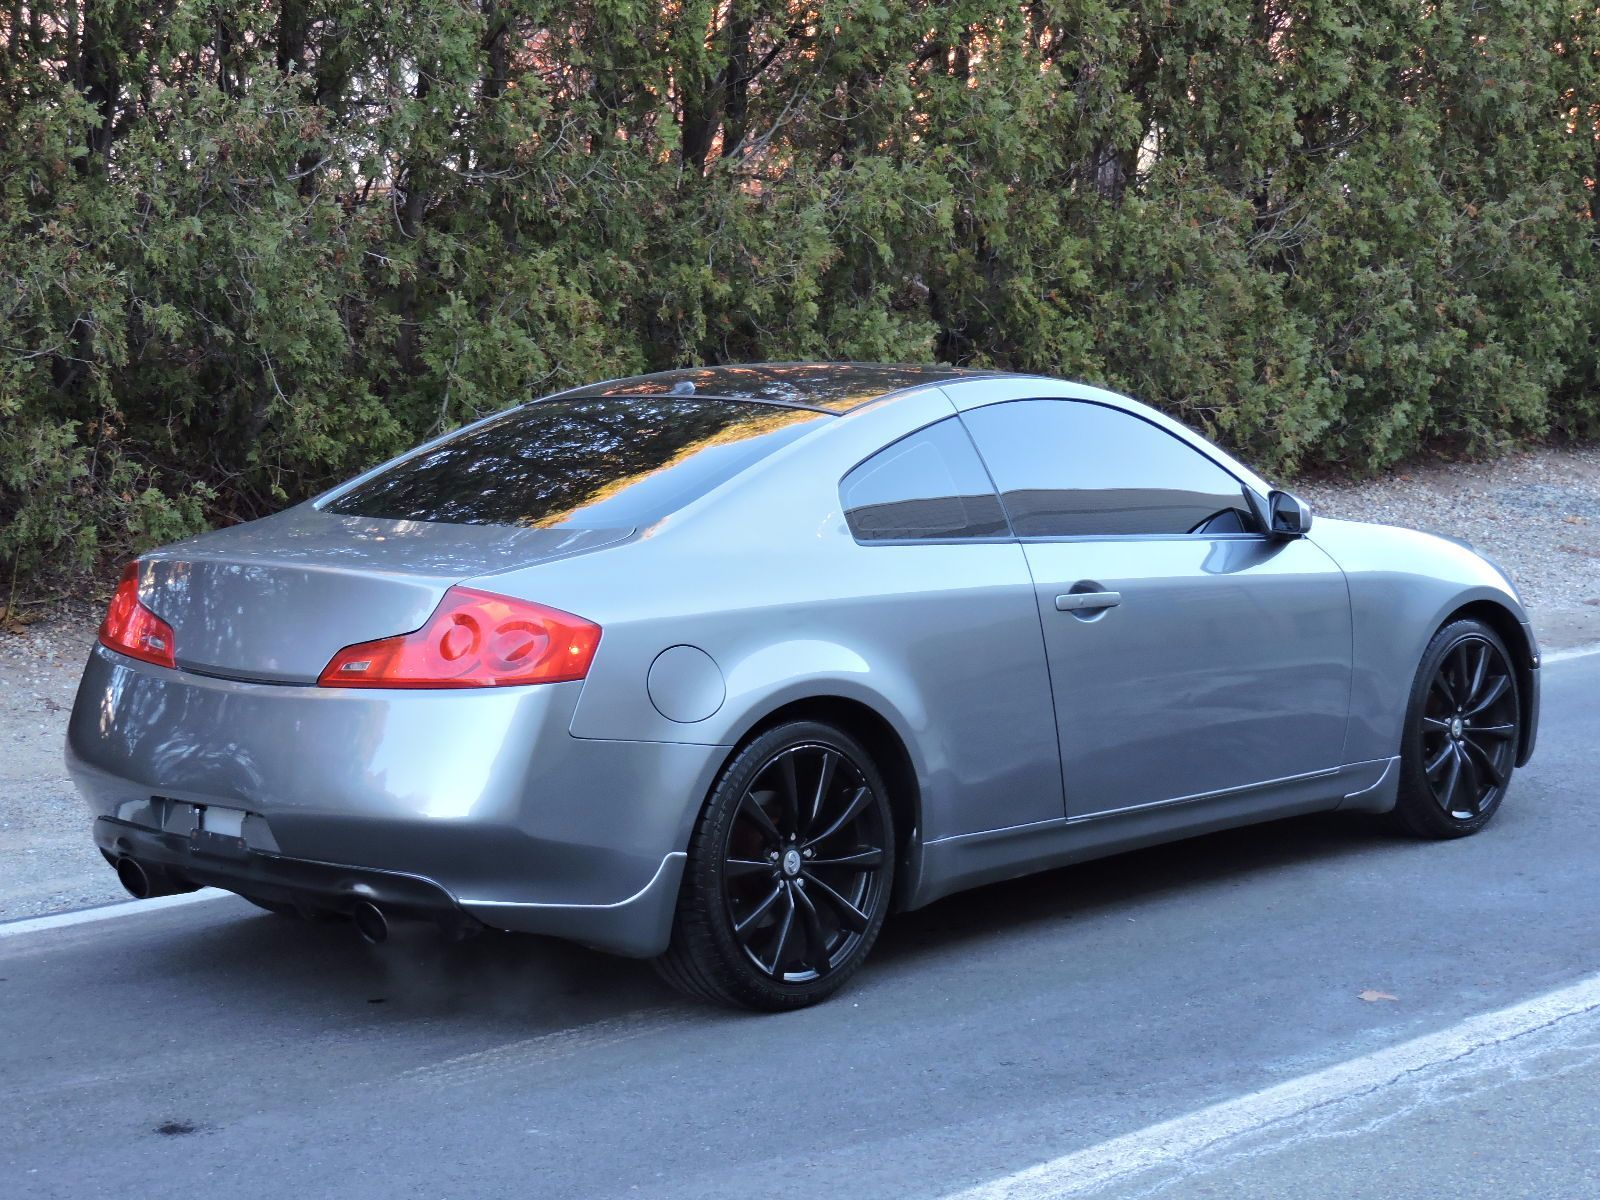 Used 2006 Infiniti G35 Coupe at Auto House USA Saugus